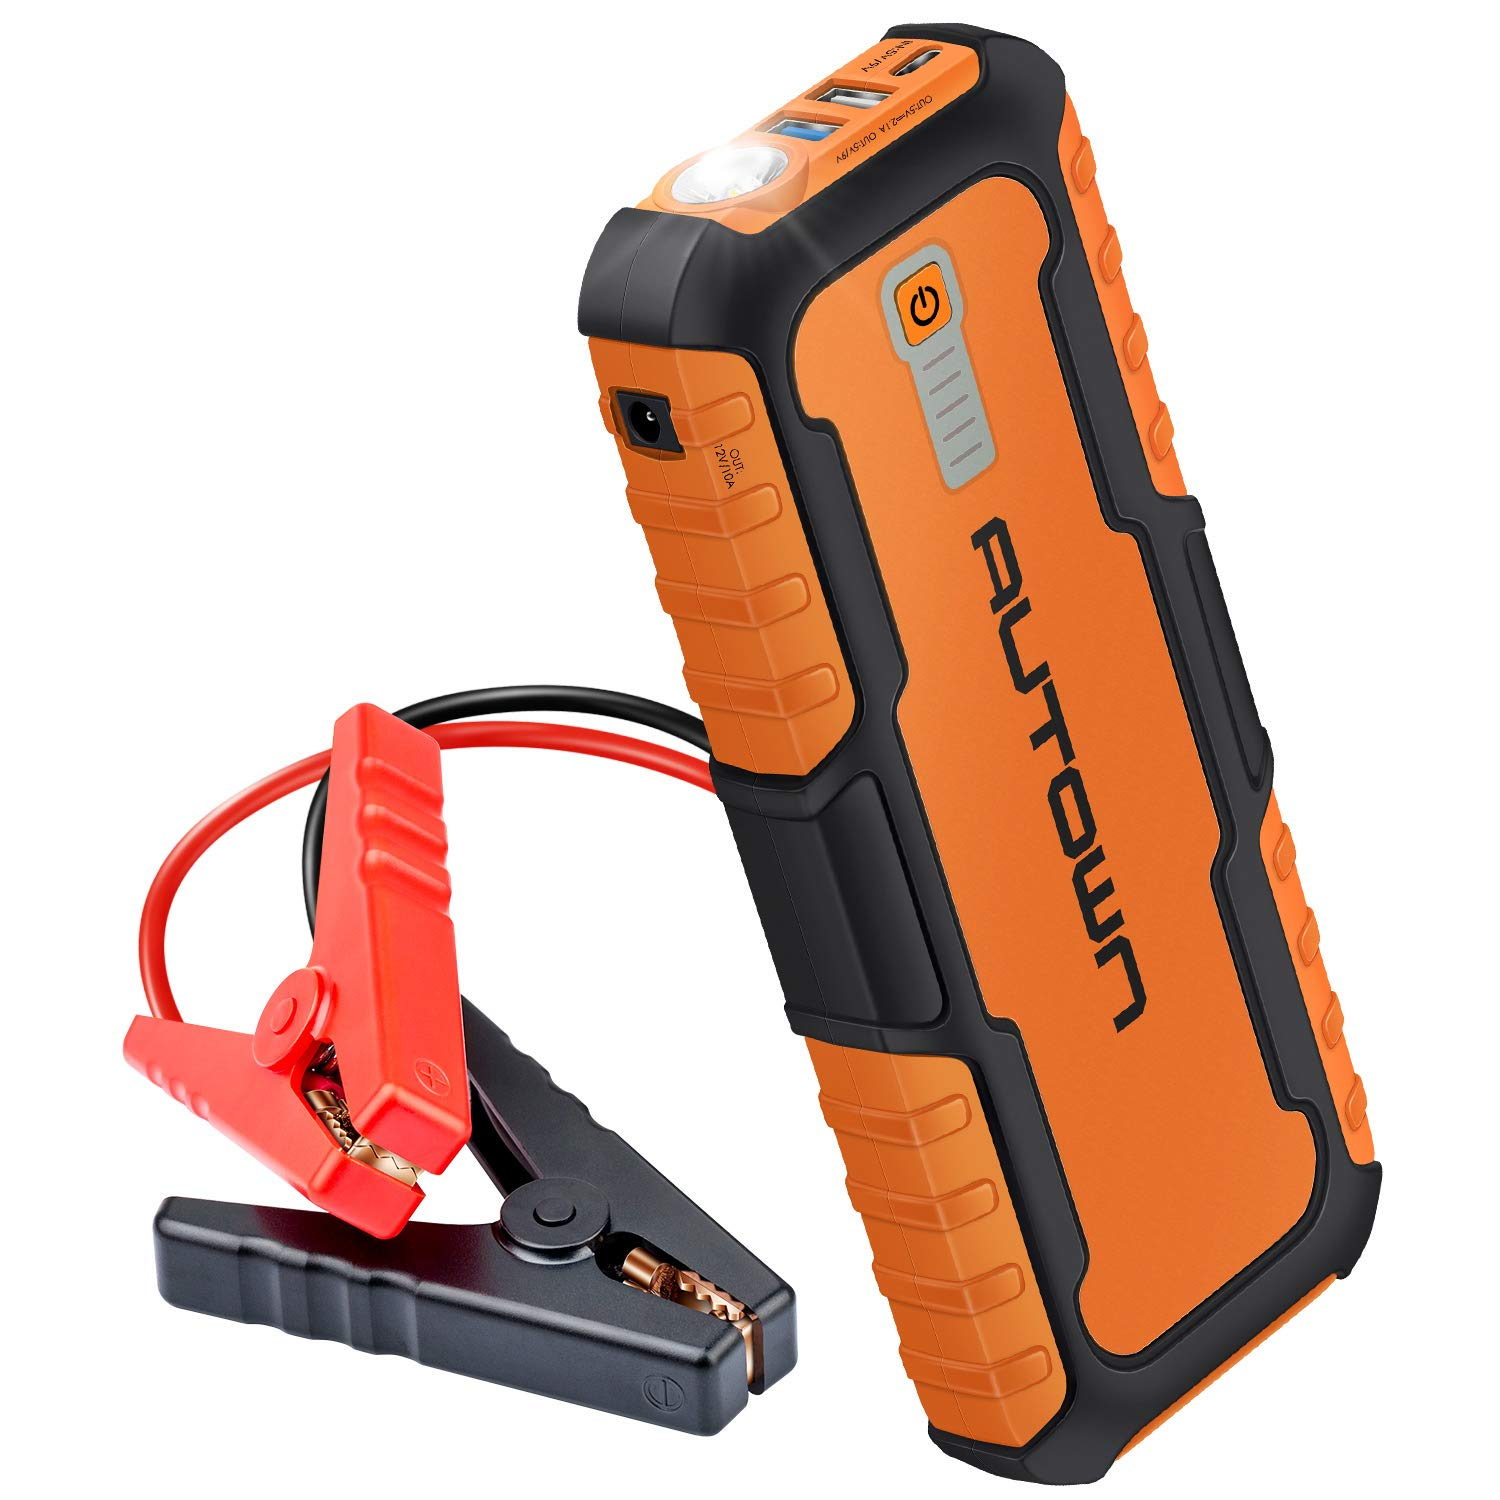 AUTOWN 21000mAh 1000A Peak UltraSafe Lithium Car Jump Starter (Up to 8.0L Gas, 6.5L Diesel Engine) - 12V Auto Battery Jumper/Booster, Portable Power Pack/Bank / Charger with QC 3.0 & Jumper Cable by AUTOWN